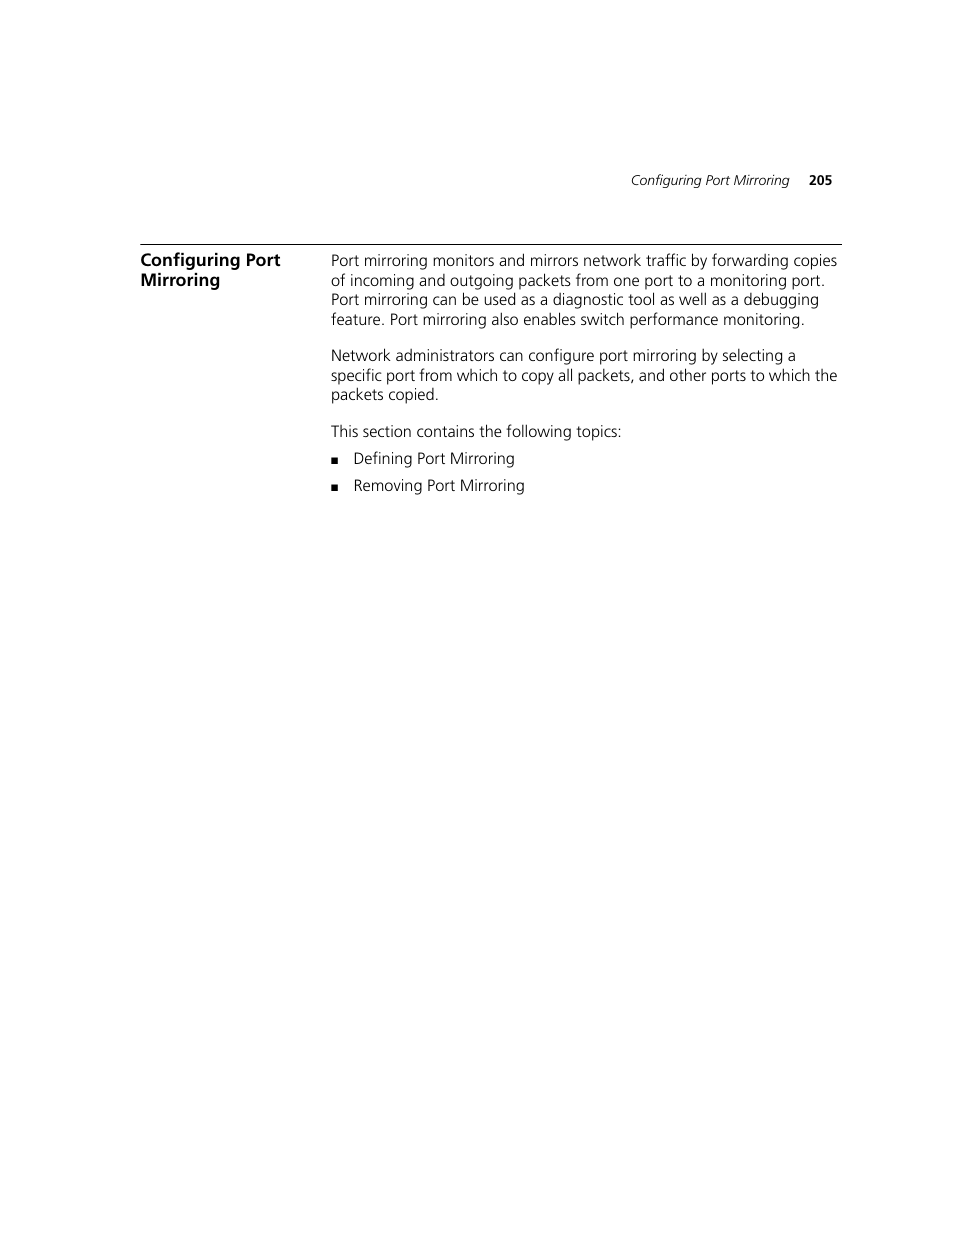 Configuring port mirroring | 3com 2924-pwr user manual | page 205.